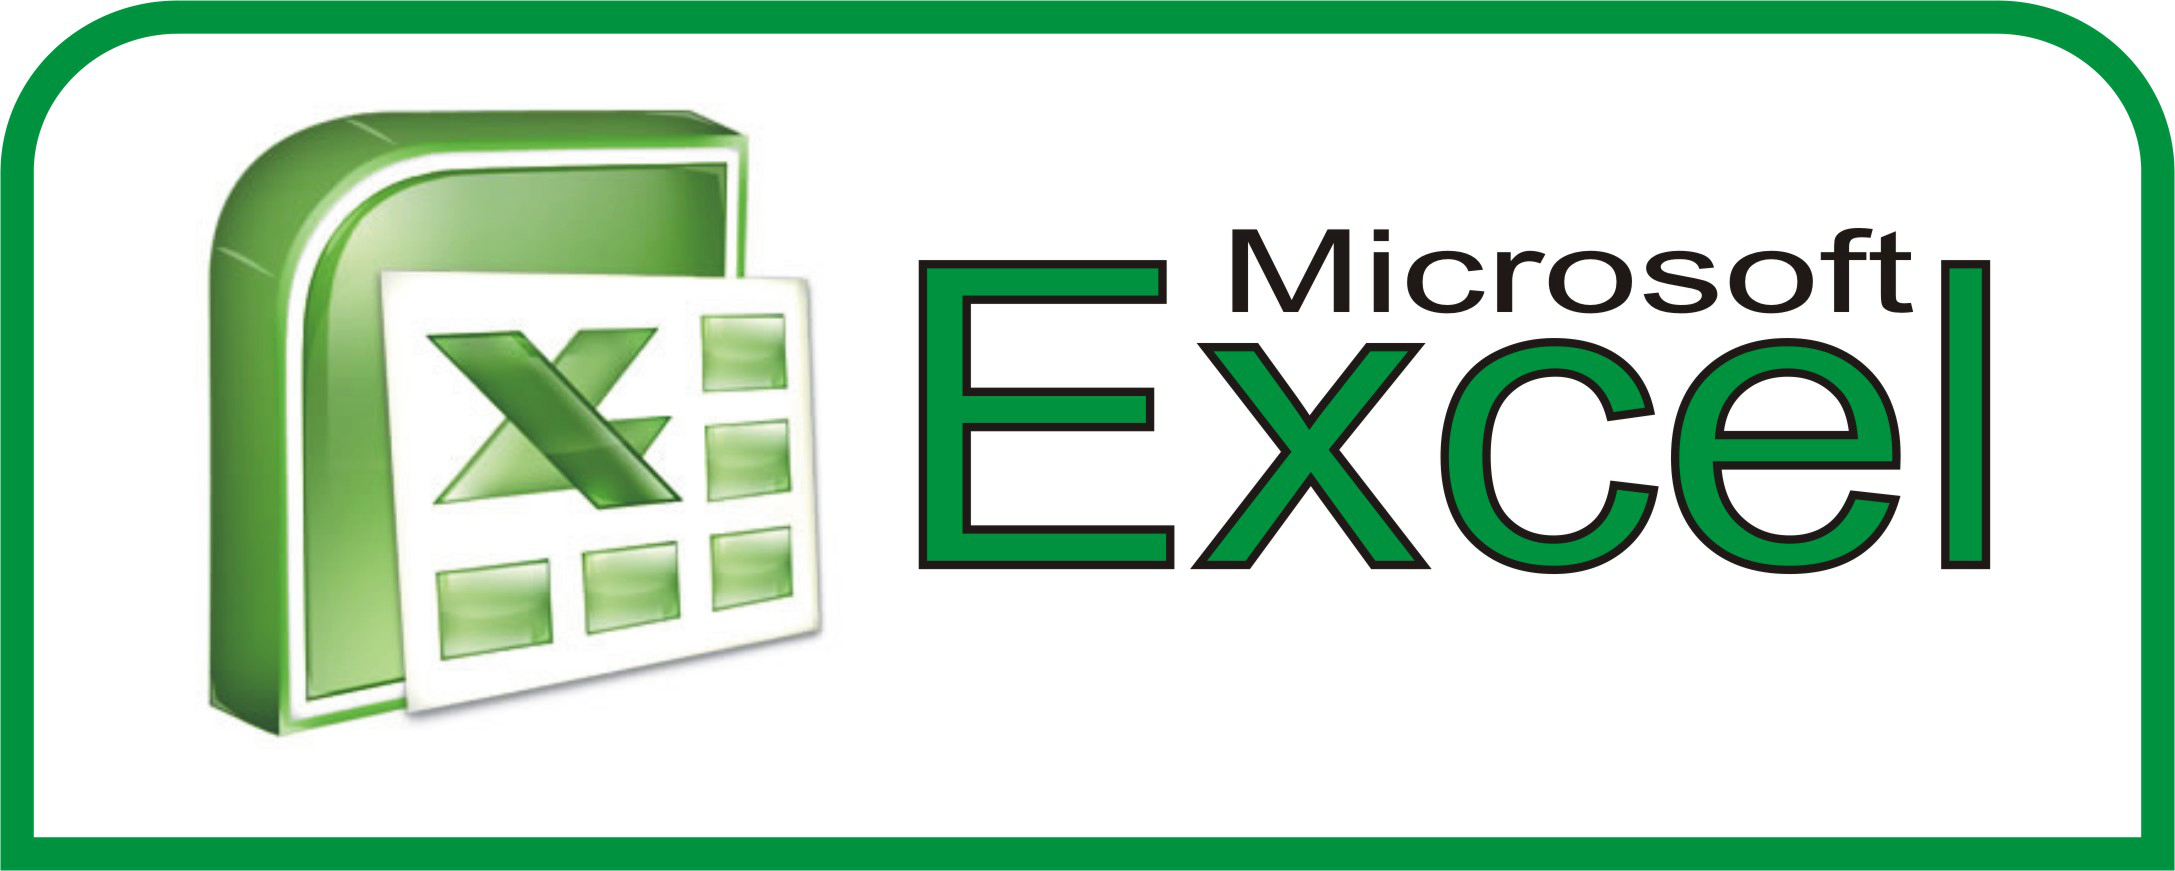 Ediblewildsus  Sweet  Excel Shortcuts You Probably Didnt Know About  Techdissected With Remarkable Excel Vlookup Error Besides How To Find Duplicates Excel Furthermore Excel Energy Phone With Easy On The Eye Google Maps Excel Also Normality Test In Excel In Addition Excel Expert Jobs And Excel Date Between As Well As Excel Or Condition Additionally How To Create A Report In Excel  From Techdissectedcom With Ediblewildsus  Remarkable  Excel Shortcuts You Probably Didnt Know About  Techdissected With Easy On The Eye Excel Vlookup Error Besides How To Find Duplicates Excel Furthermore Excel Energy Phone And Sweet Google Maps Excel Also Normality Test In Excel In Addition Excel Expert Jobs From Techdissectedcom